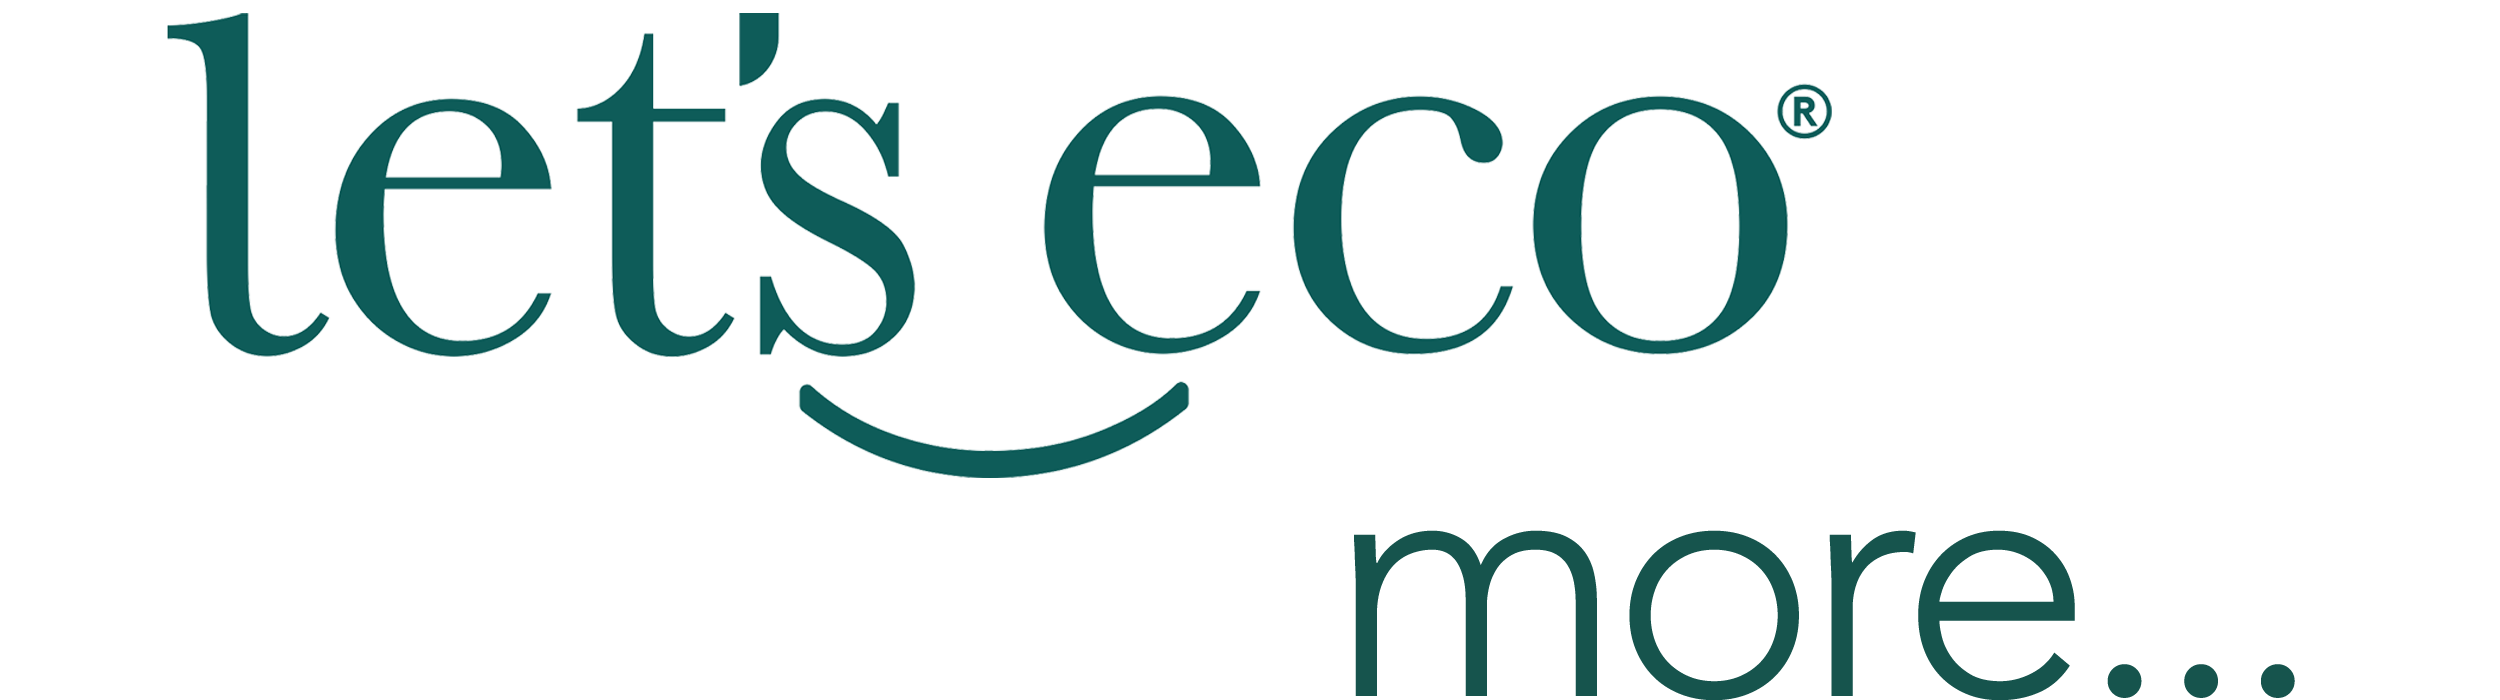 let's eco more... image